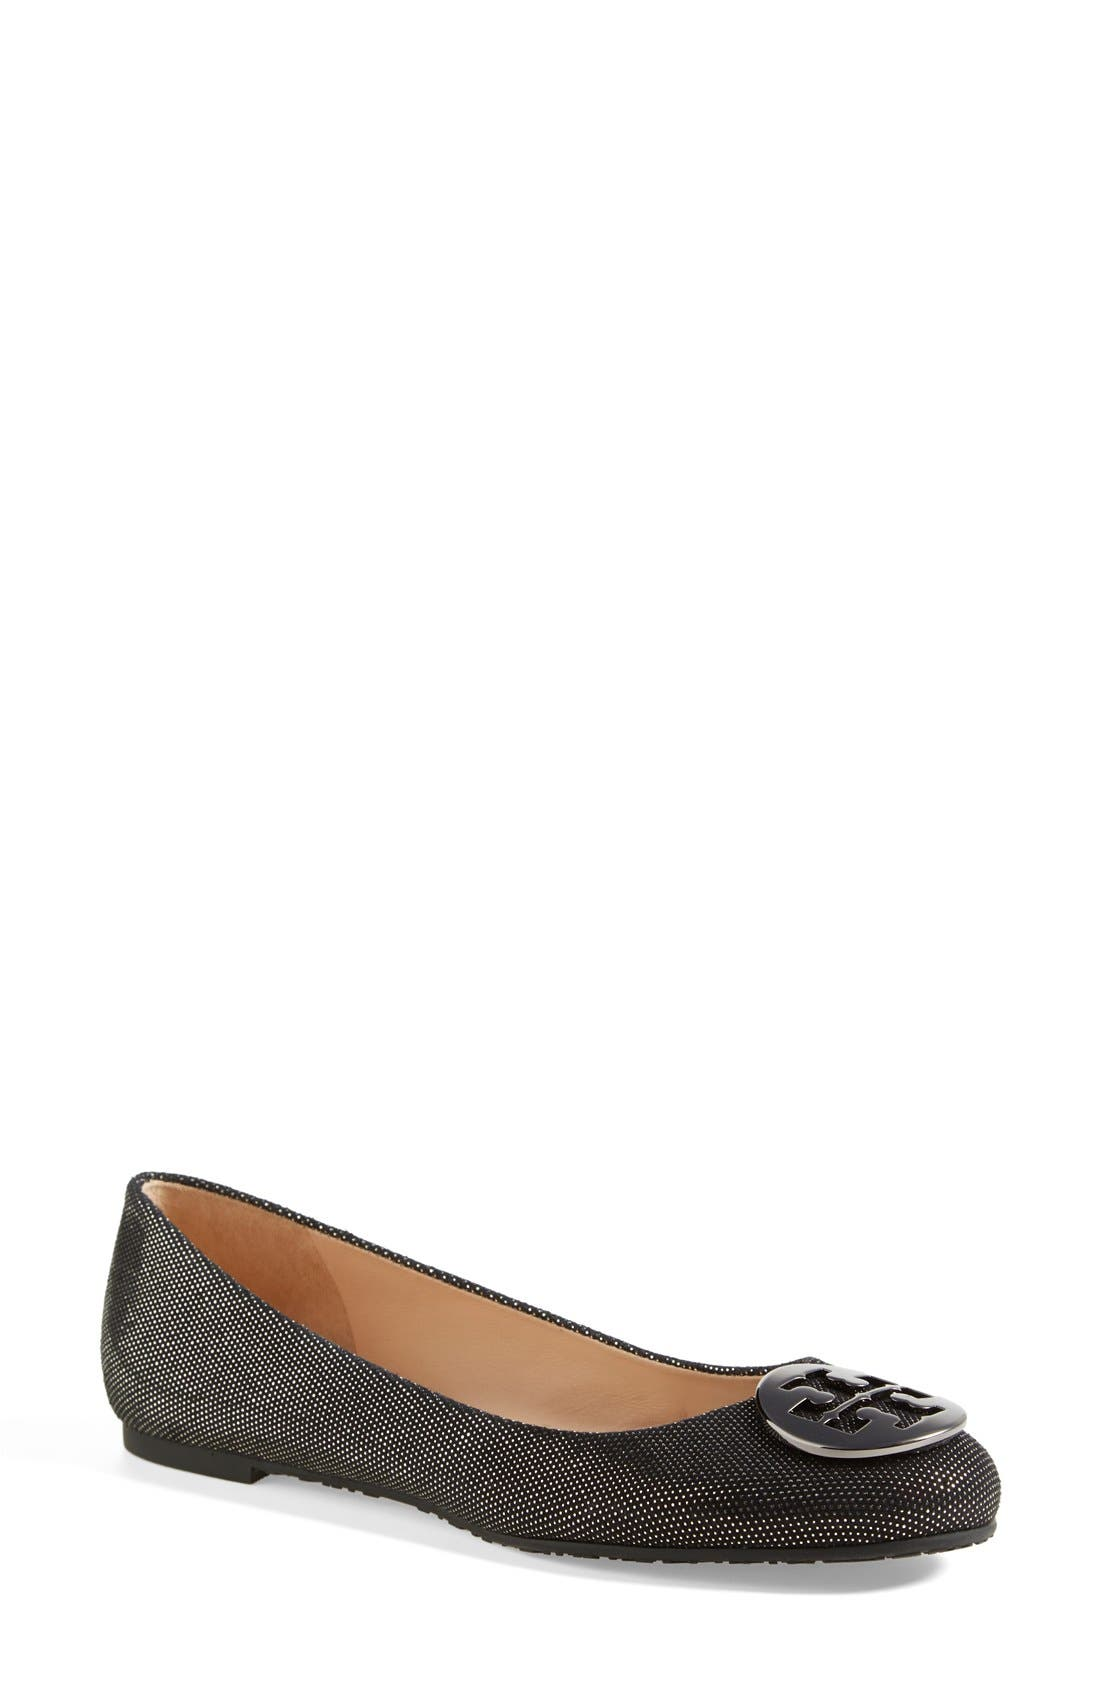 Main Image - Tory Burch 'Reva' Metallic Dot Suede Ballet Flat (Women)